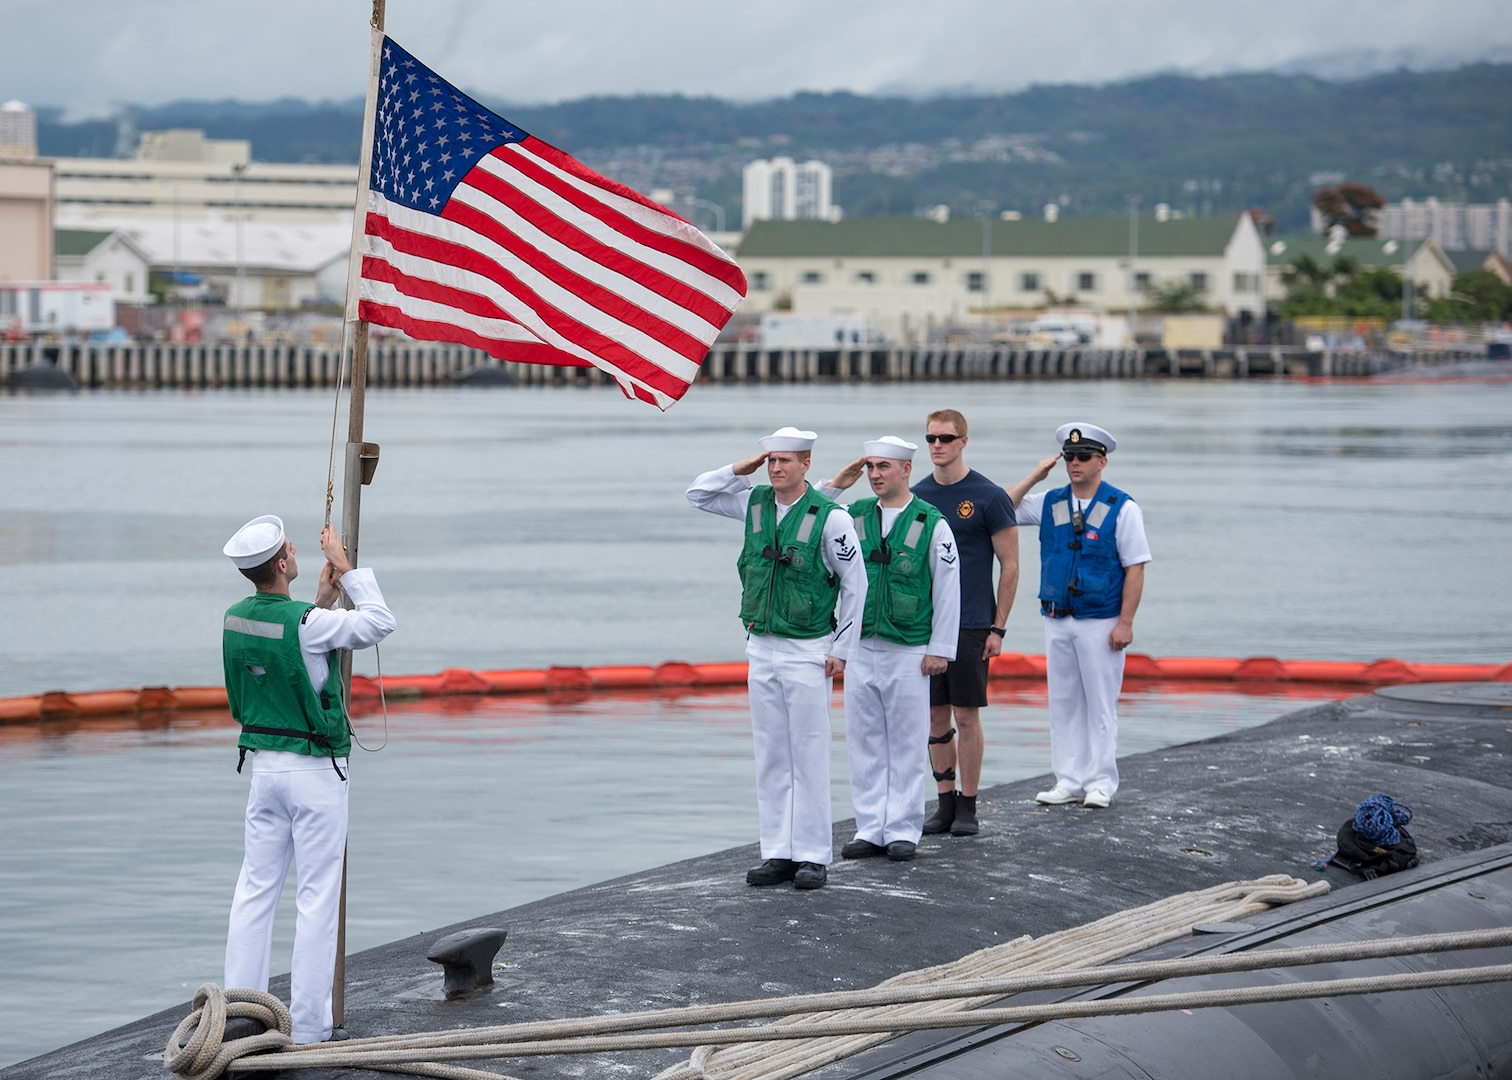 USS Texas returns to Pearl Harbor after deployment